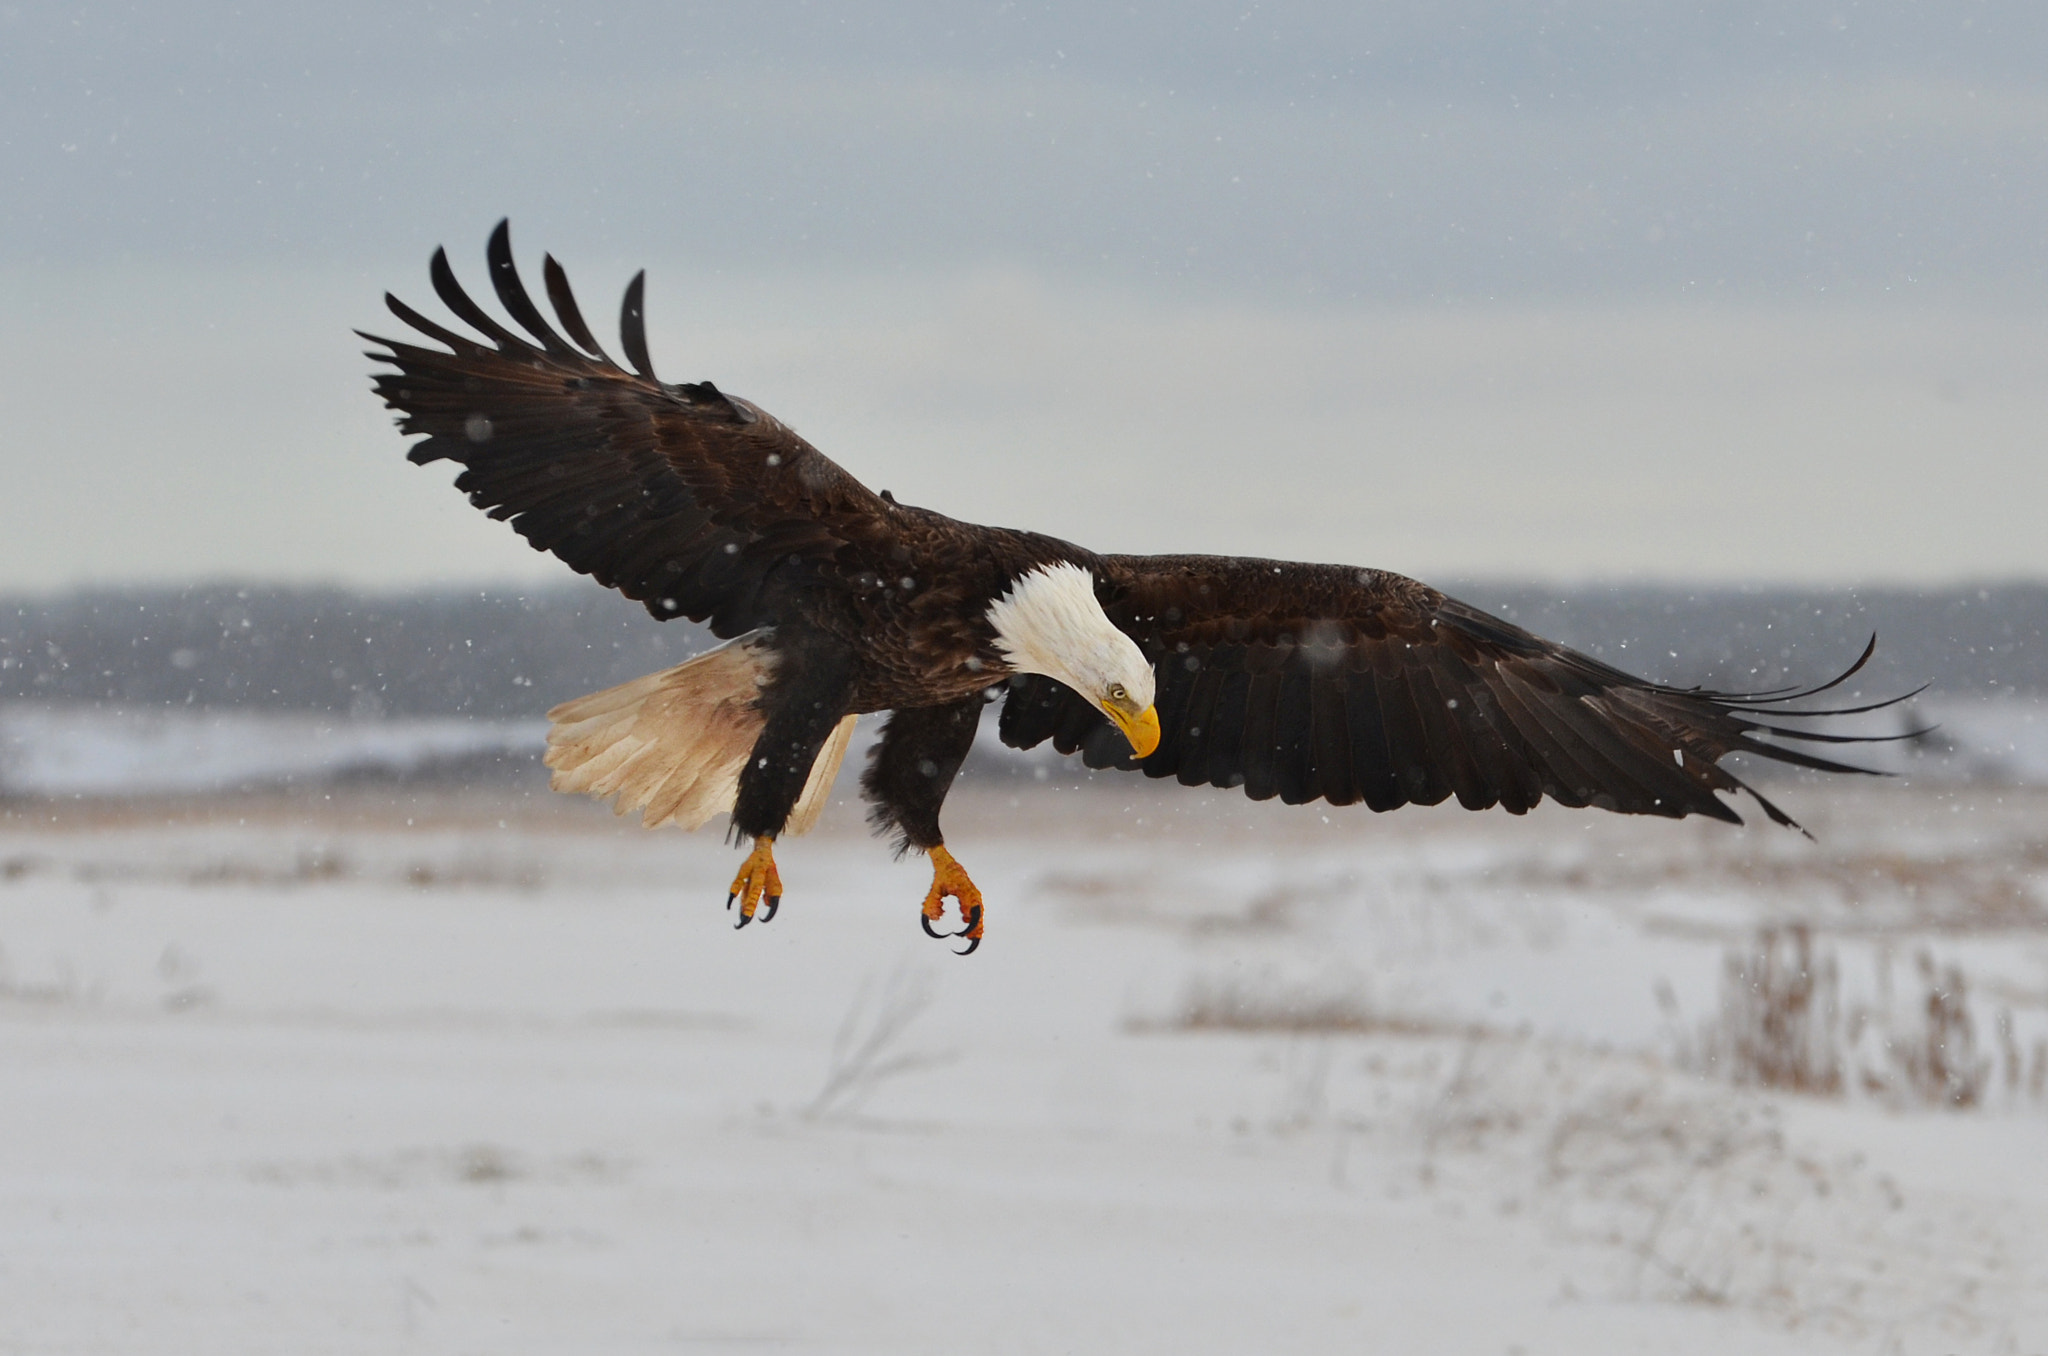 Photograph Snowfall Landing by Peter Brannon on 500px